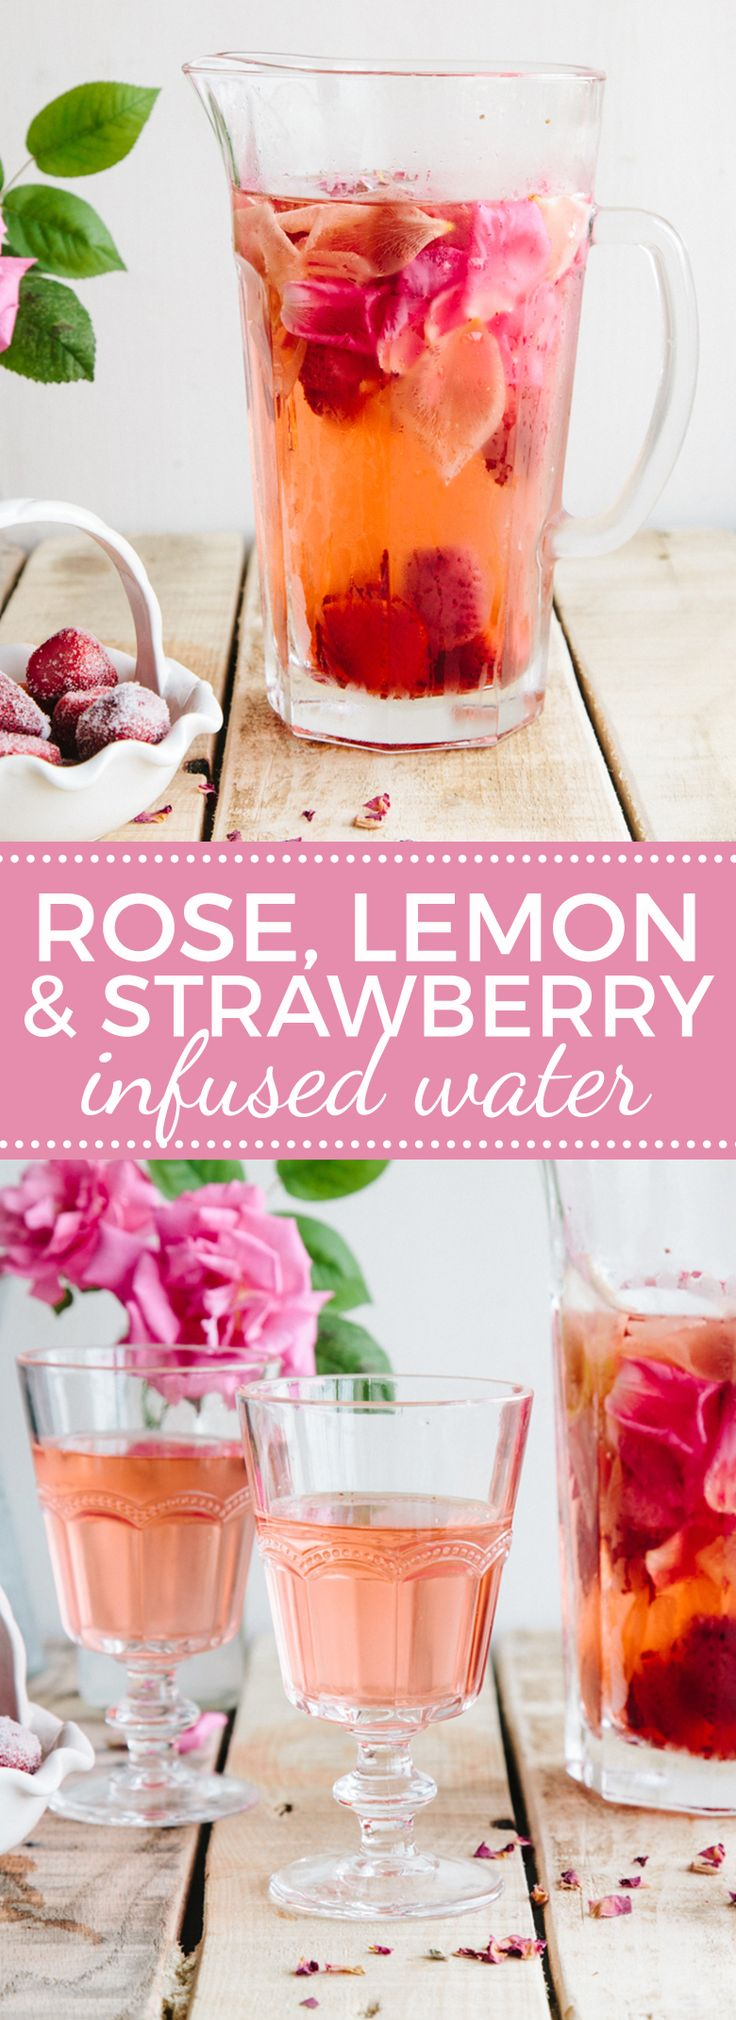 Rose, Lemon & Strawberry Infused Water | Join our Pinterest Fam: @dropbottle